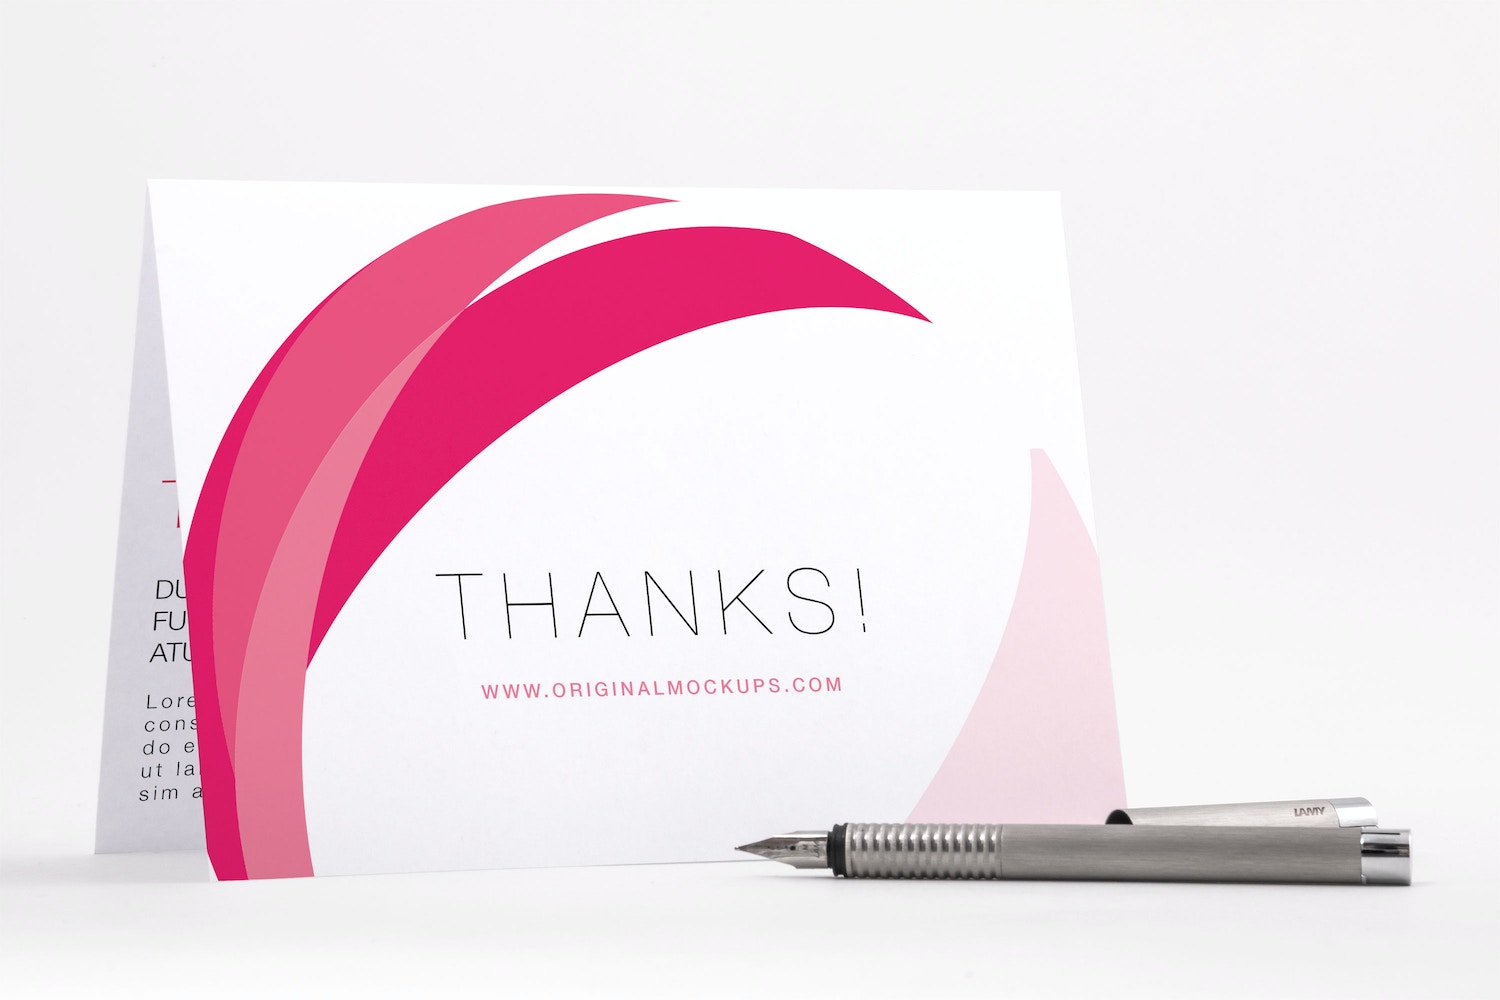 Bifold Thank You Card PSD Mockup 04 by Original Mockups on Original Mockups